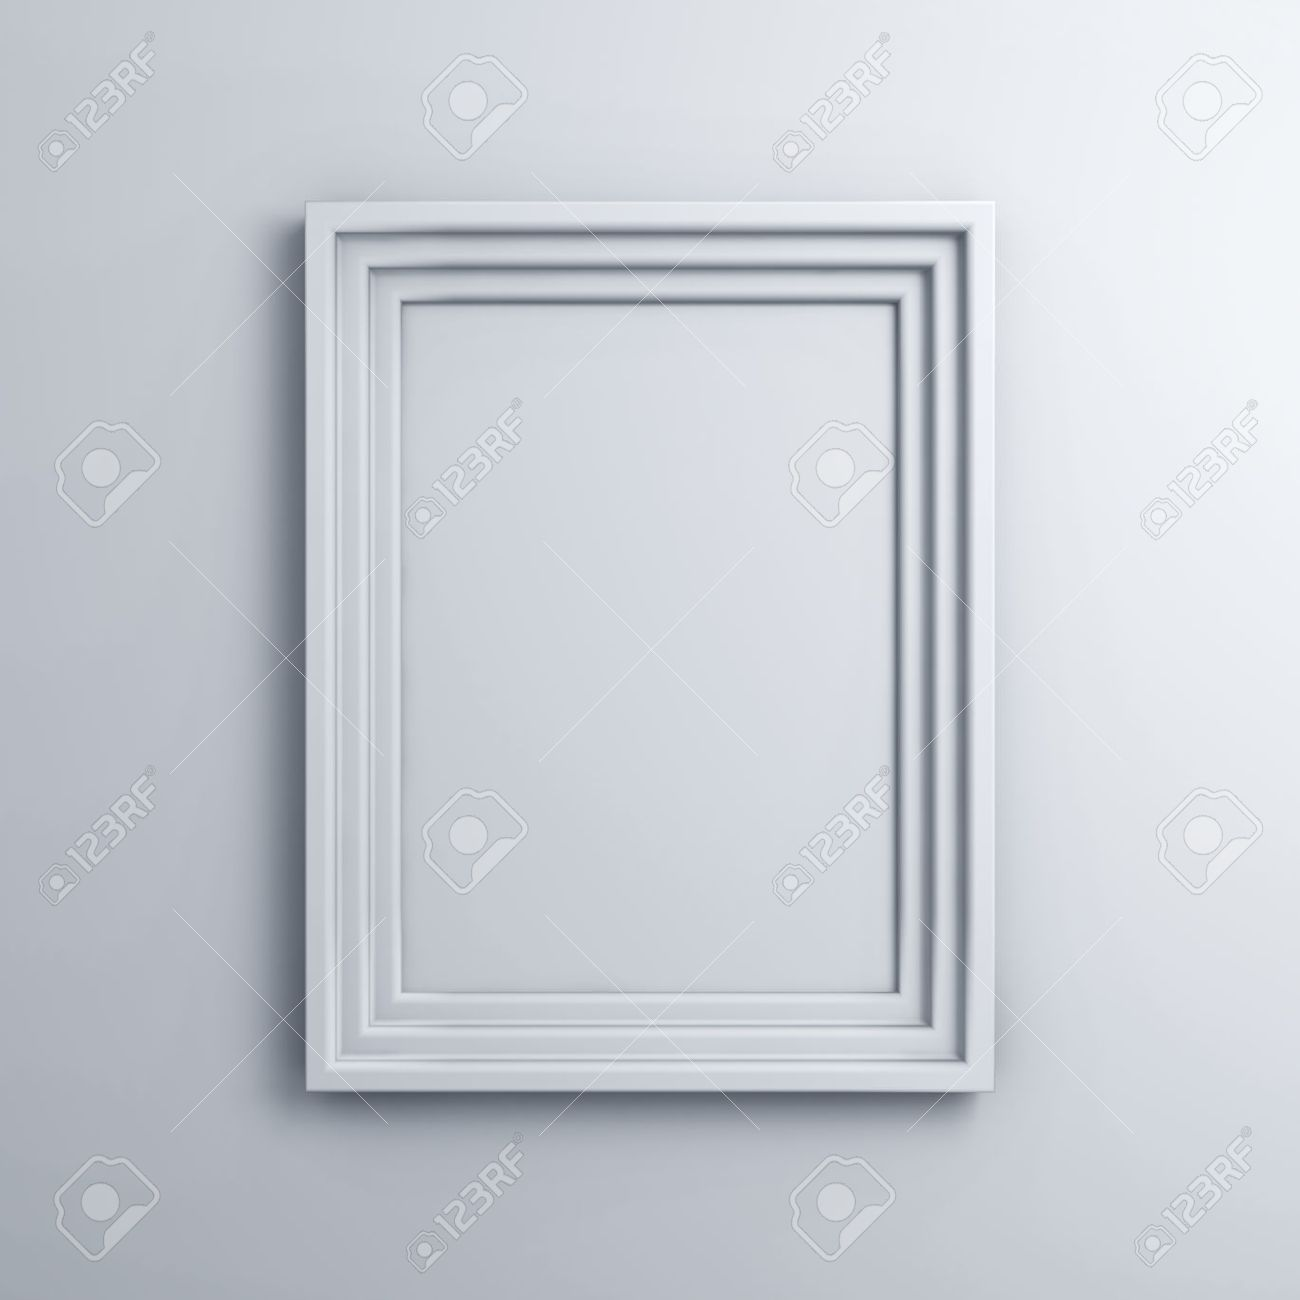 Blank Frame On A White Wall Background With Shadow Stock Photo ...